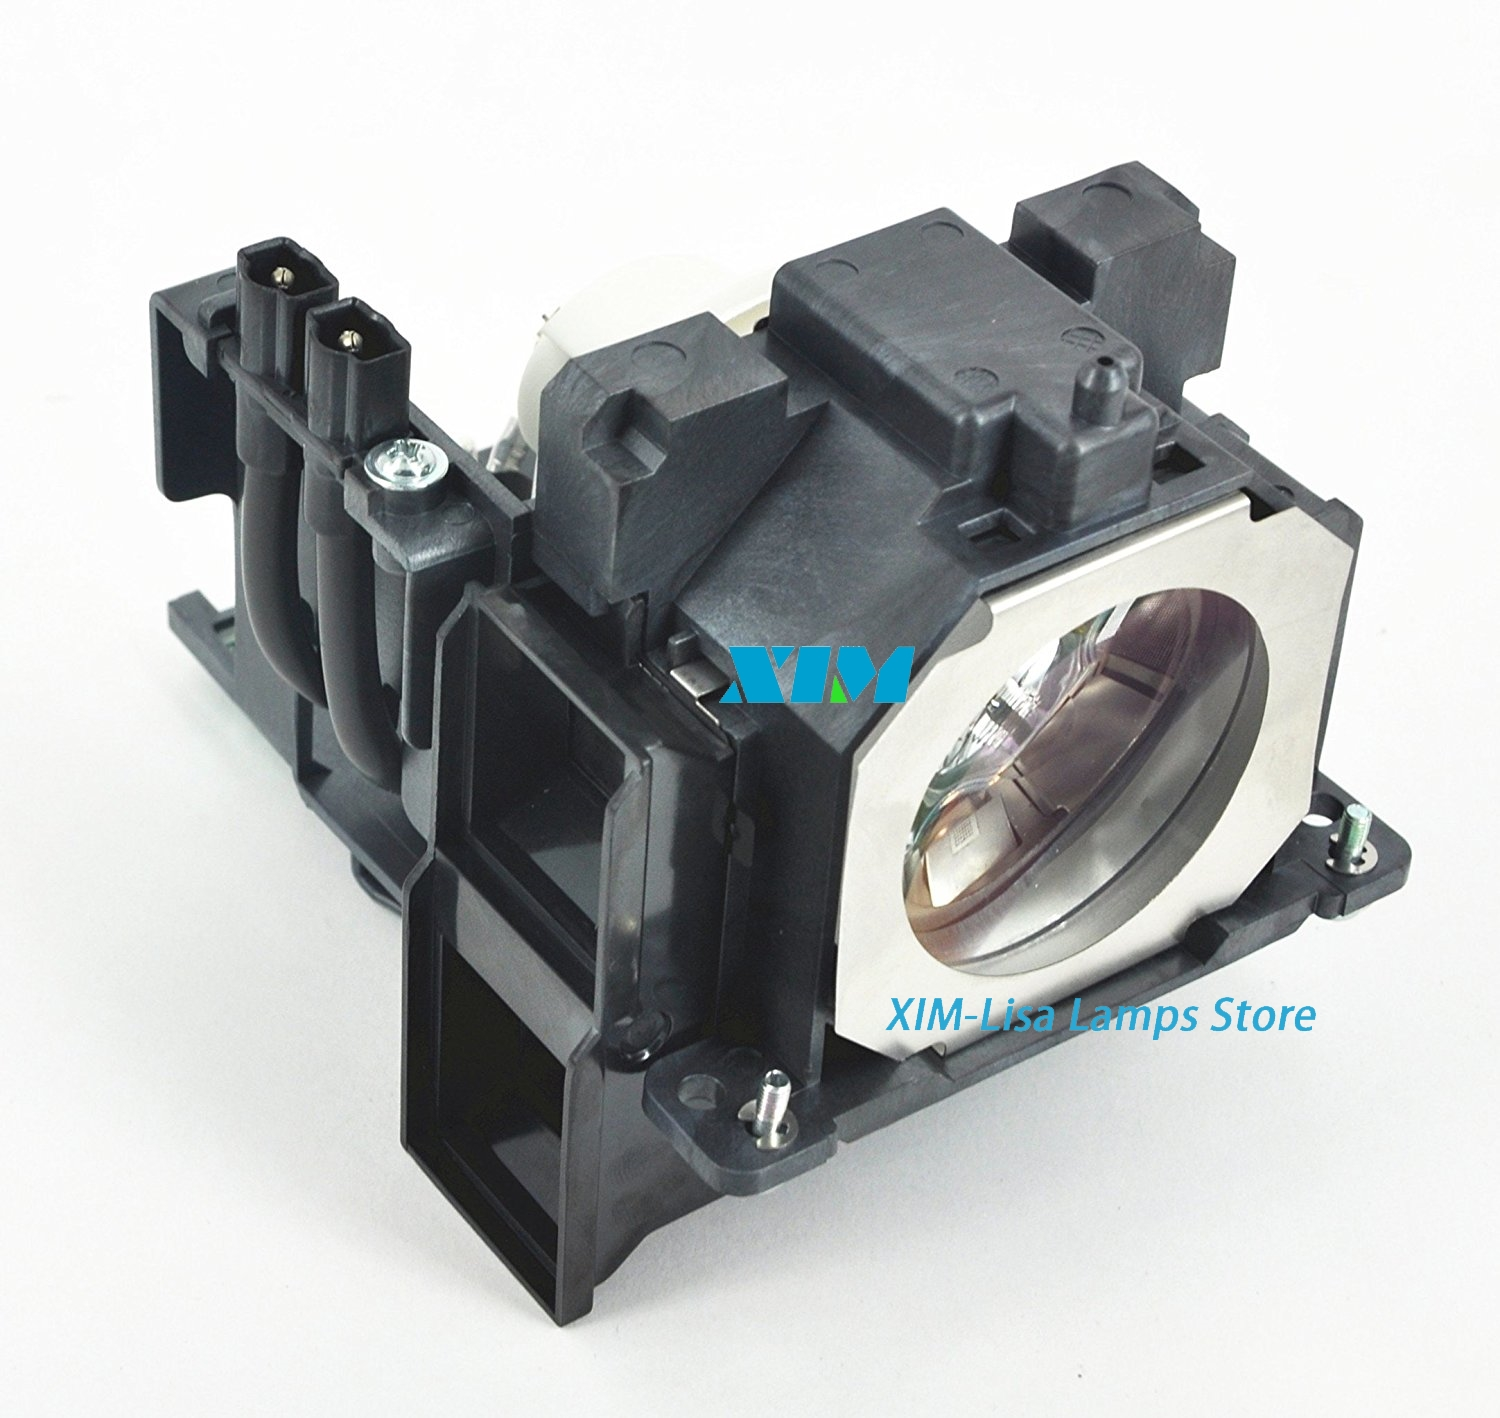 High Quality Replacement Projector lamp with housing ET-LAE300 For PT-EW540 PT-EZ770ZL PT-EX800Z PT-EX800ZL PT-EW730Z PT-EW730Z high quality replacement projector lamp with housing et lae300 for pt ew540 pt ez770zl pt ex800z pt ex800zl pt ew730z pt ew730z